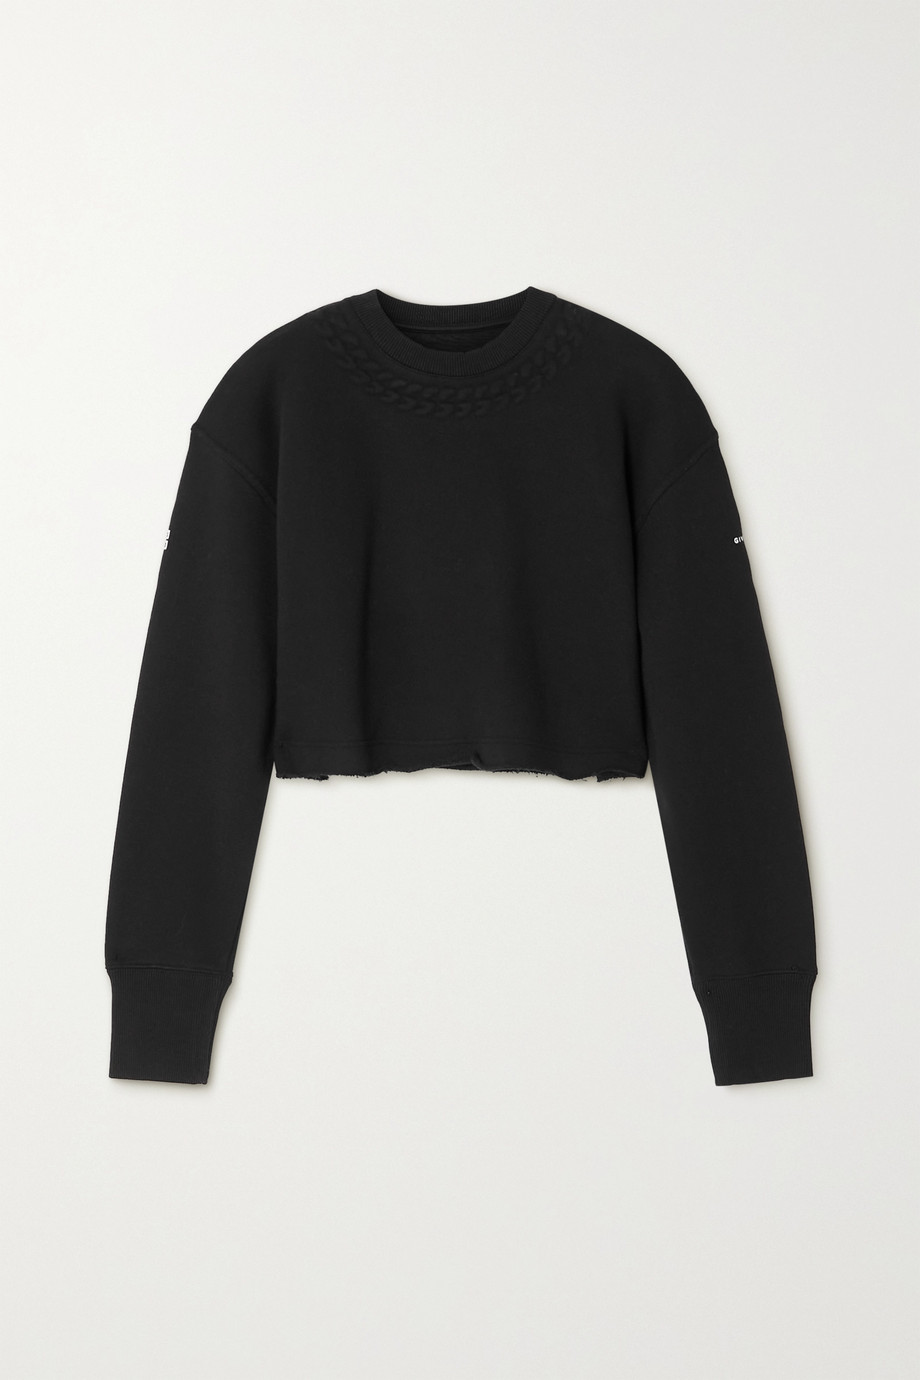 GIVENCHY Cropped embossed cotton-jersey sweatshirt